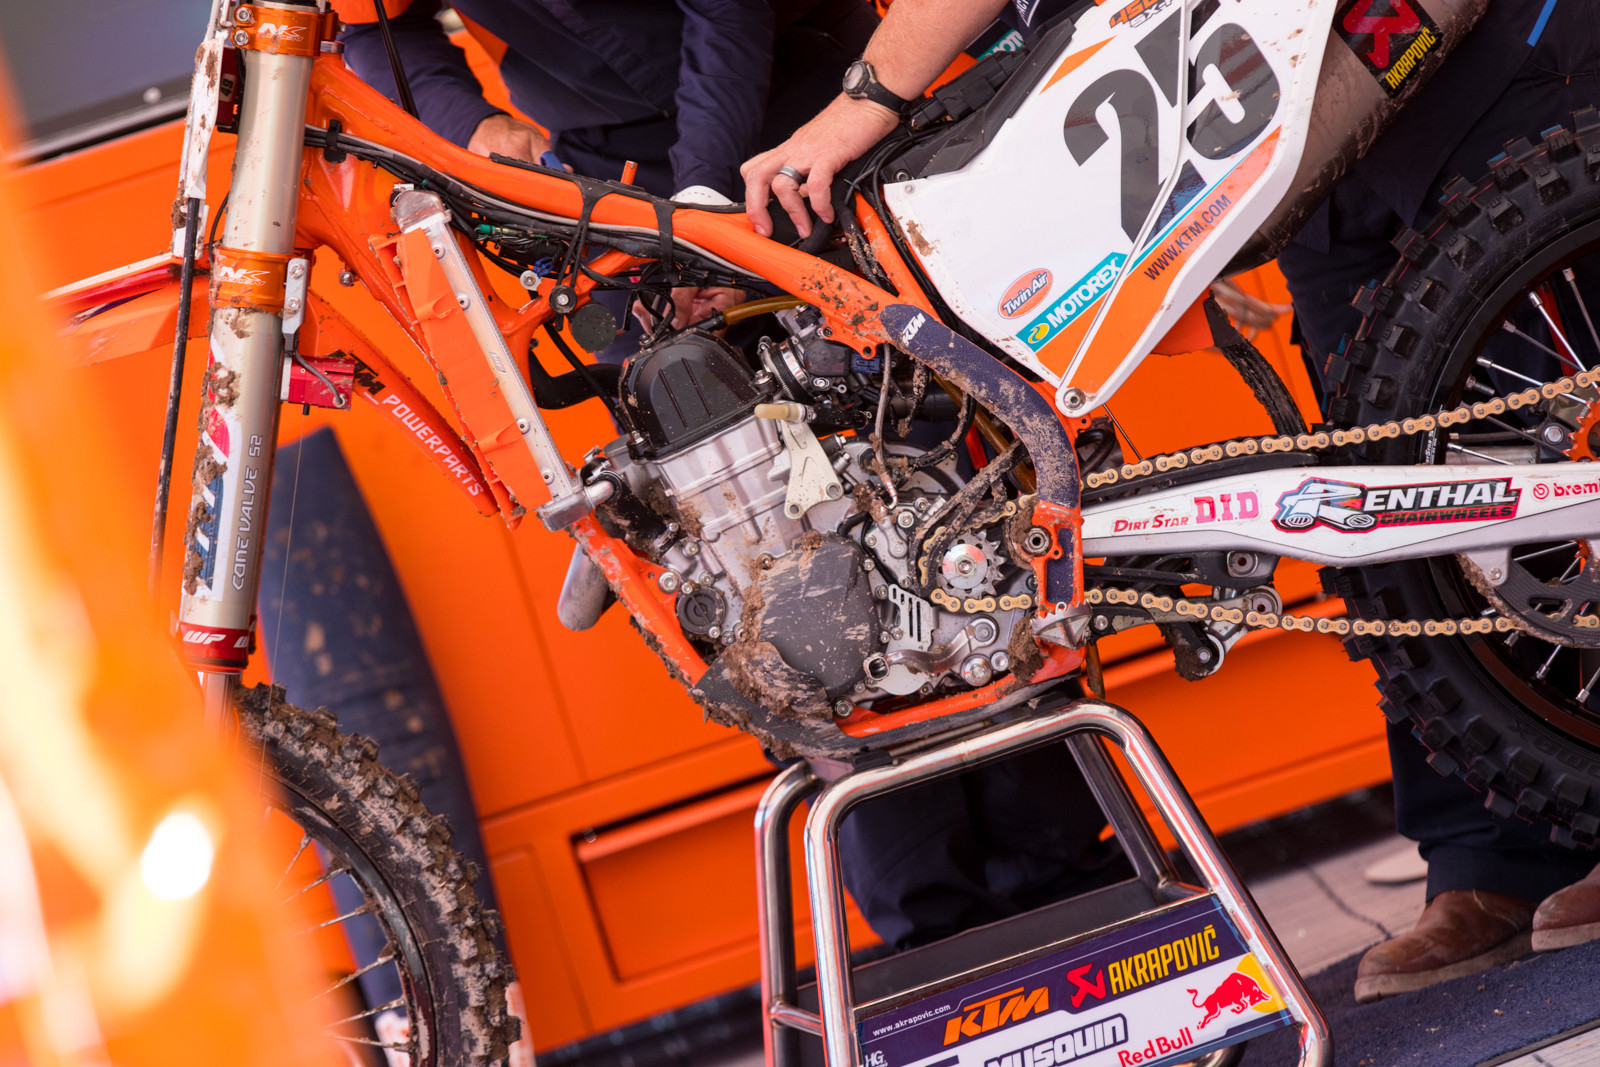 Lucky for us, but bad for Musquin, there was a problem with his bike during the first practice session. Which led the KTM team to tear the bike down in plain sight and we finally got a good look at the new cylinder head...and found something else.